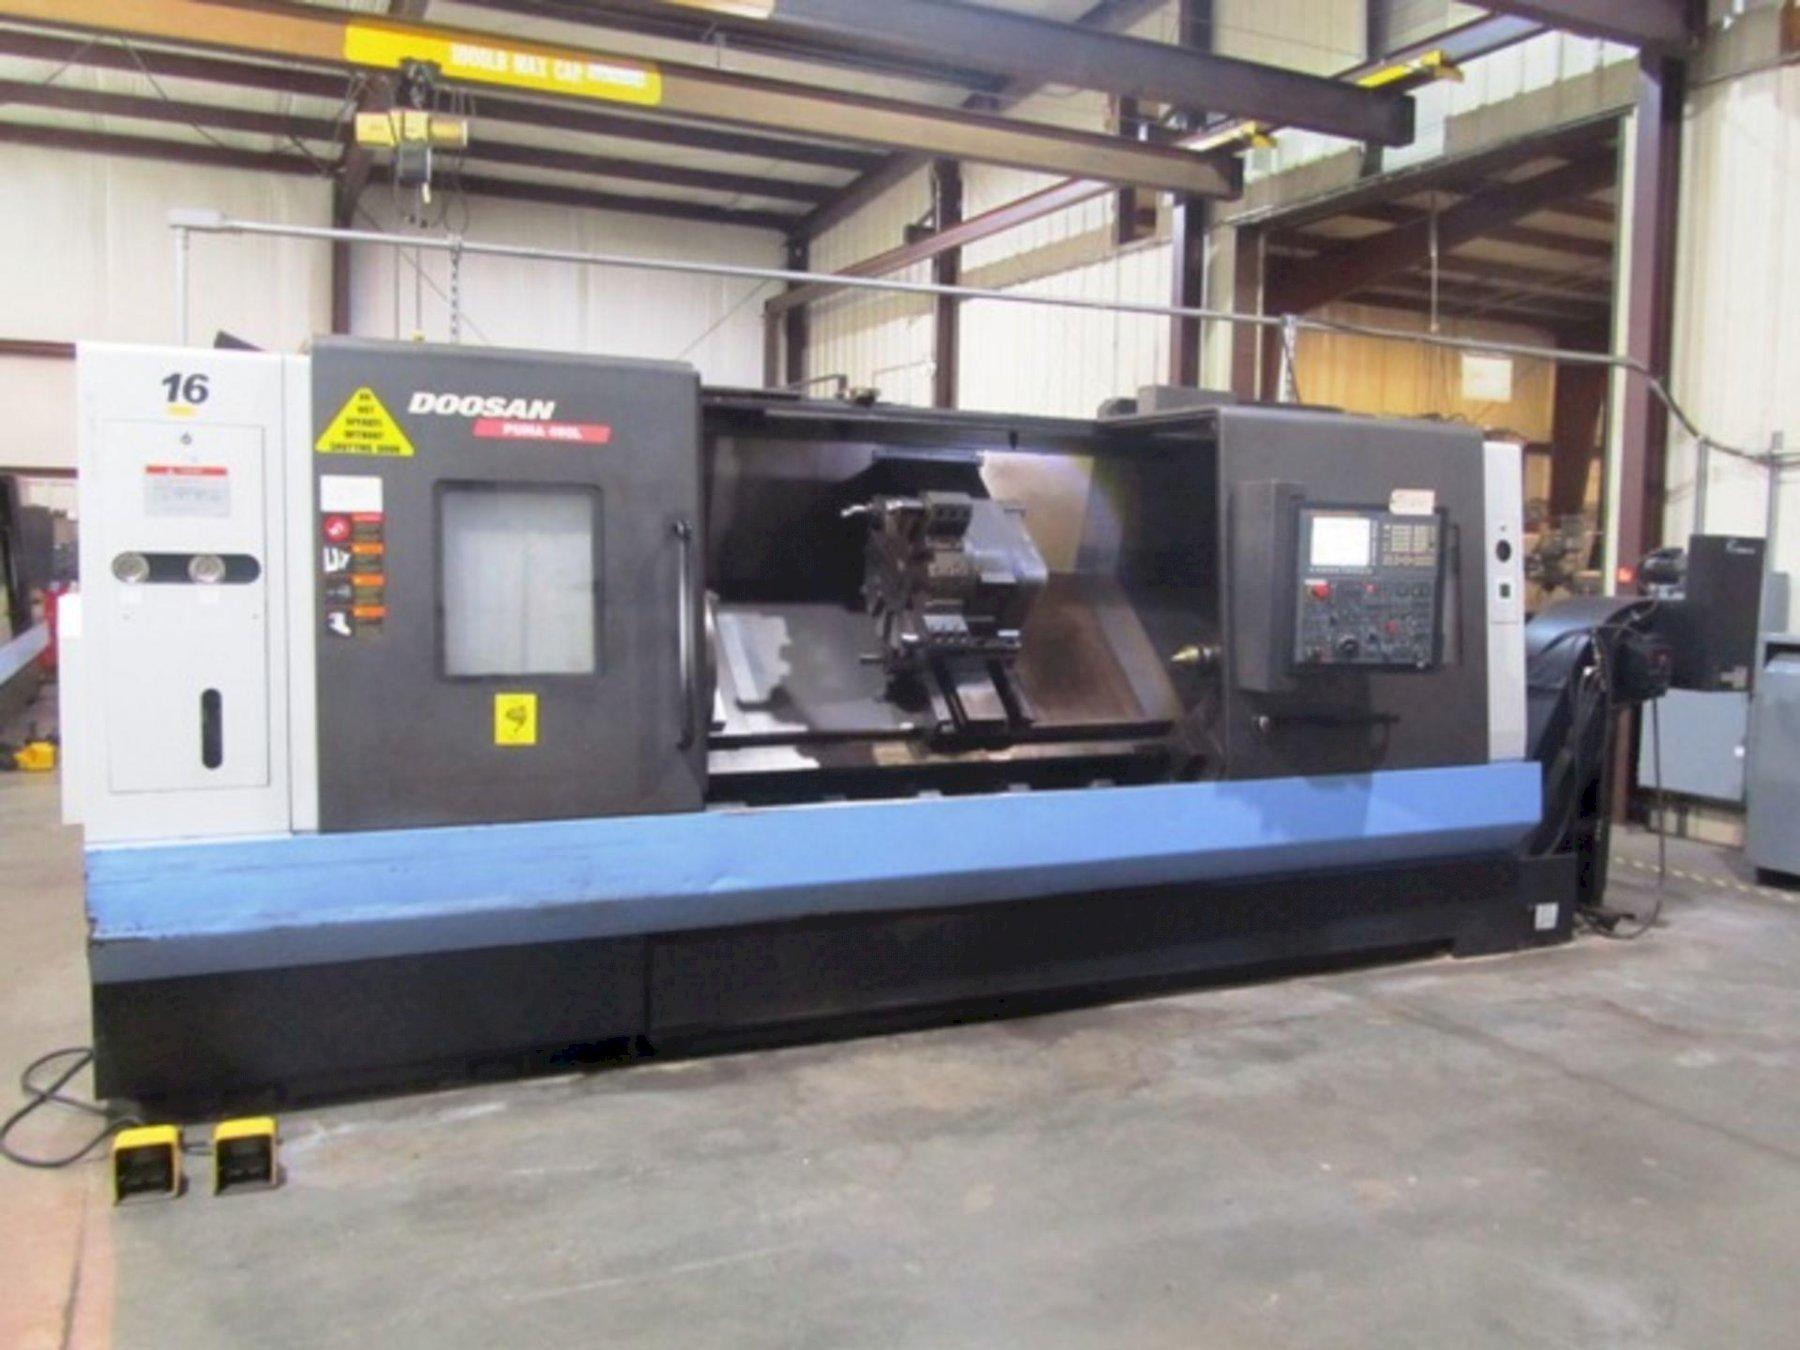 """DOOSAN PUMA 480L CNC TURNING CENTER, Fanuc 32i CNC Control, 24'' 3-Jaw Chuck, Max 36'' Swing, Tailstock with 84"""" Centers, 63 HP Spindle, 1500 Max Spindle RPM, 12-Position Turret, Tool Setter, Chip Conveyor & Coolant System, New 2014."""